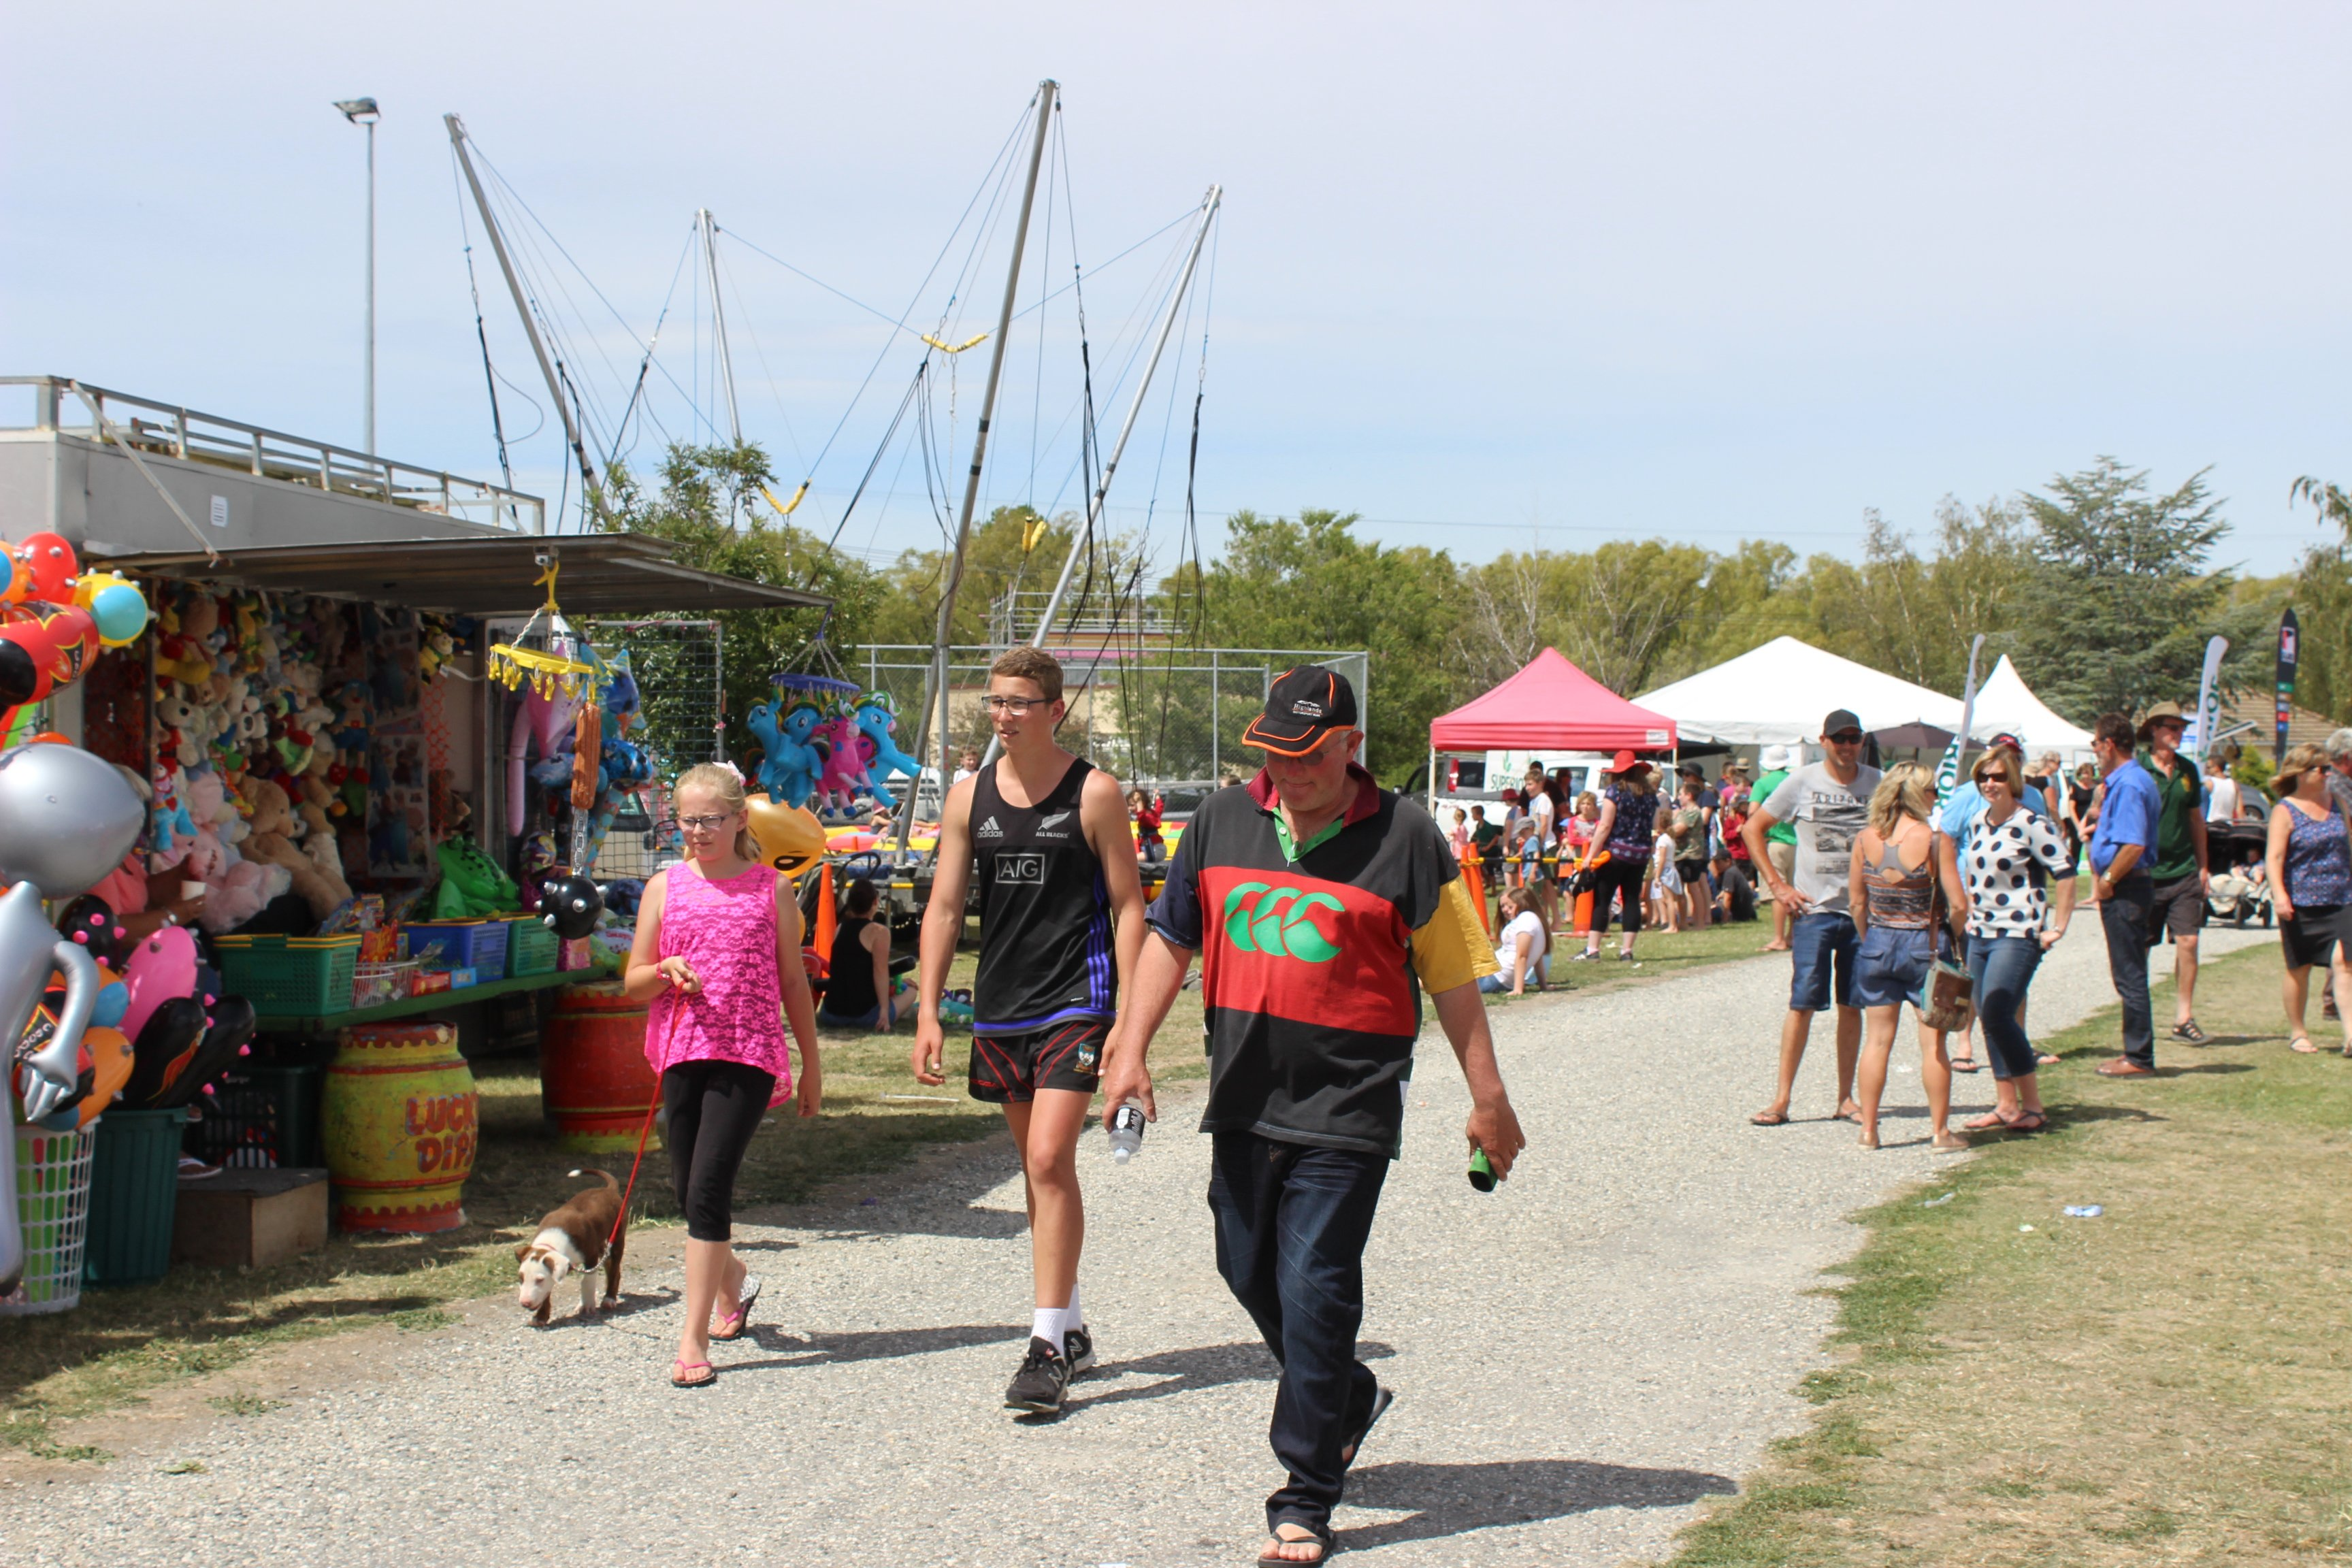 The crowd's enjoying the Central Otago A and P Show in February this year.